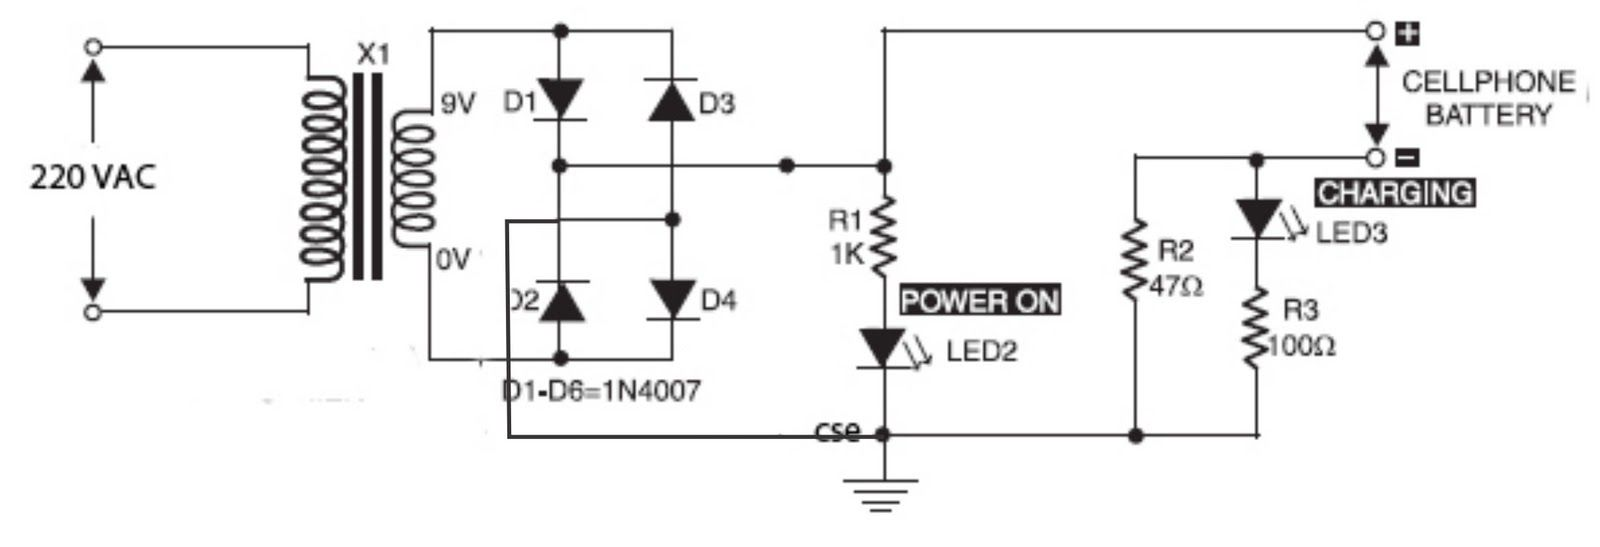 mobile phone battery charger circuit circuit diagram